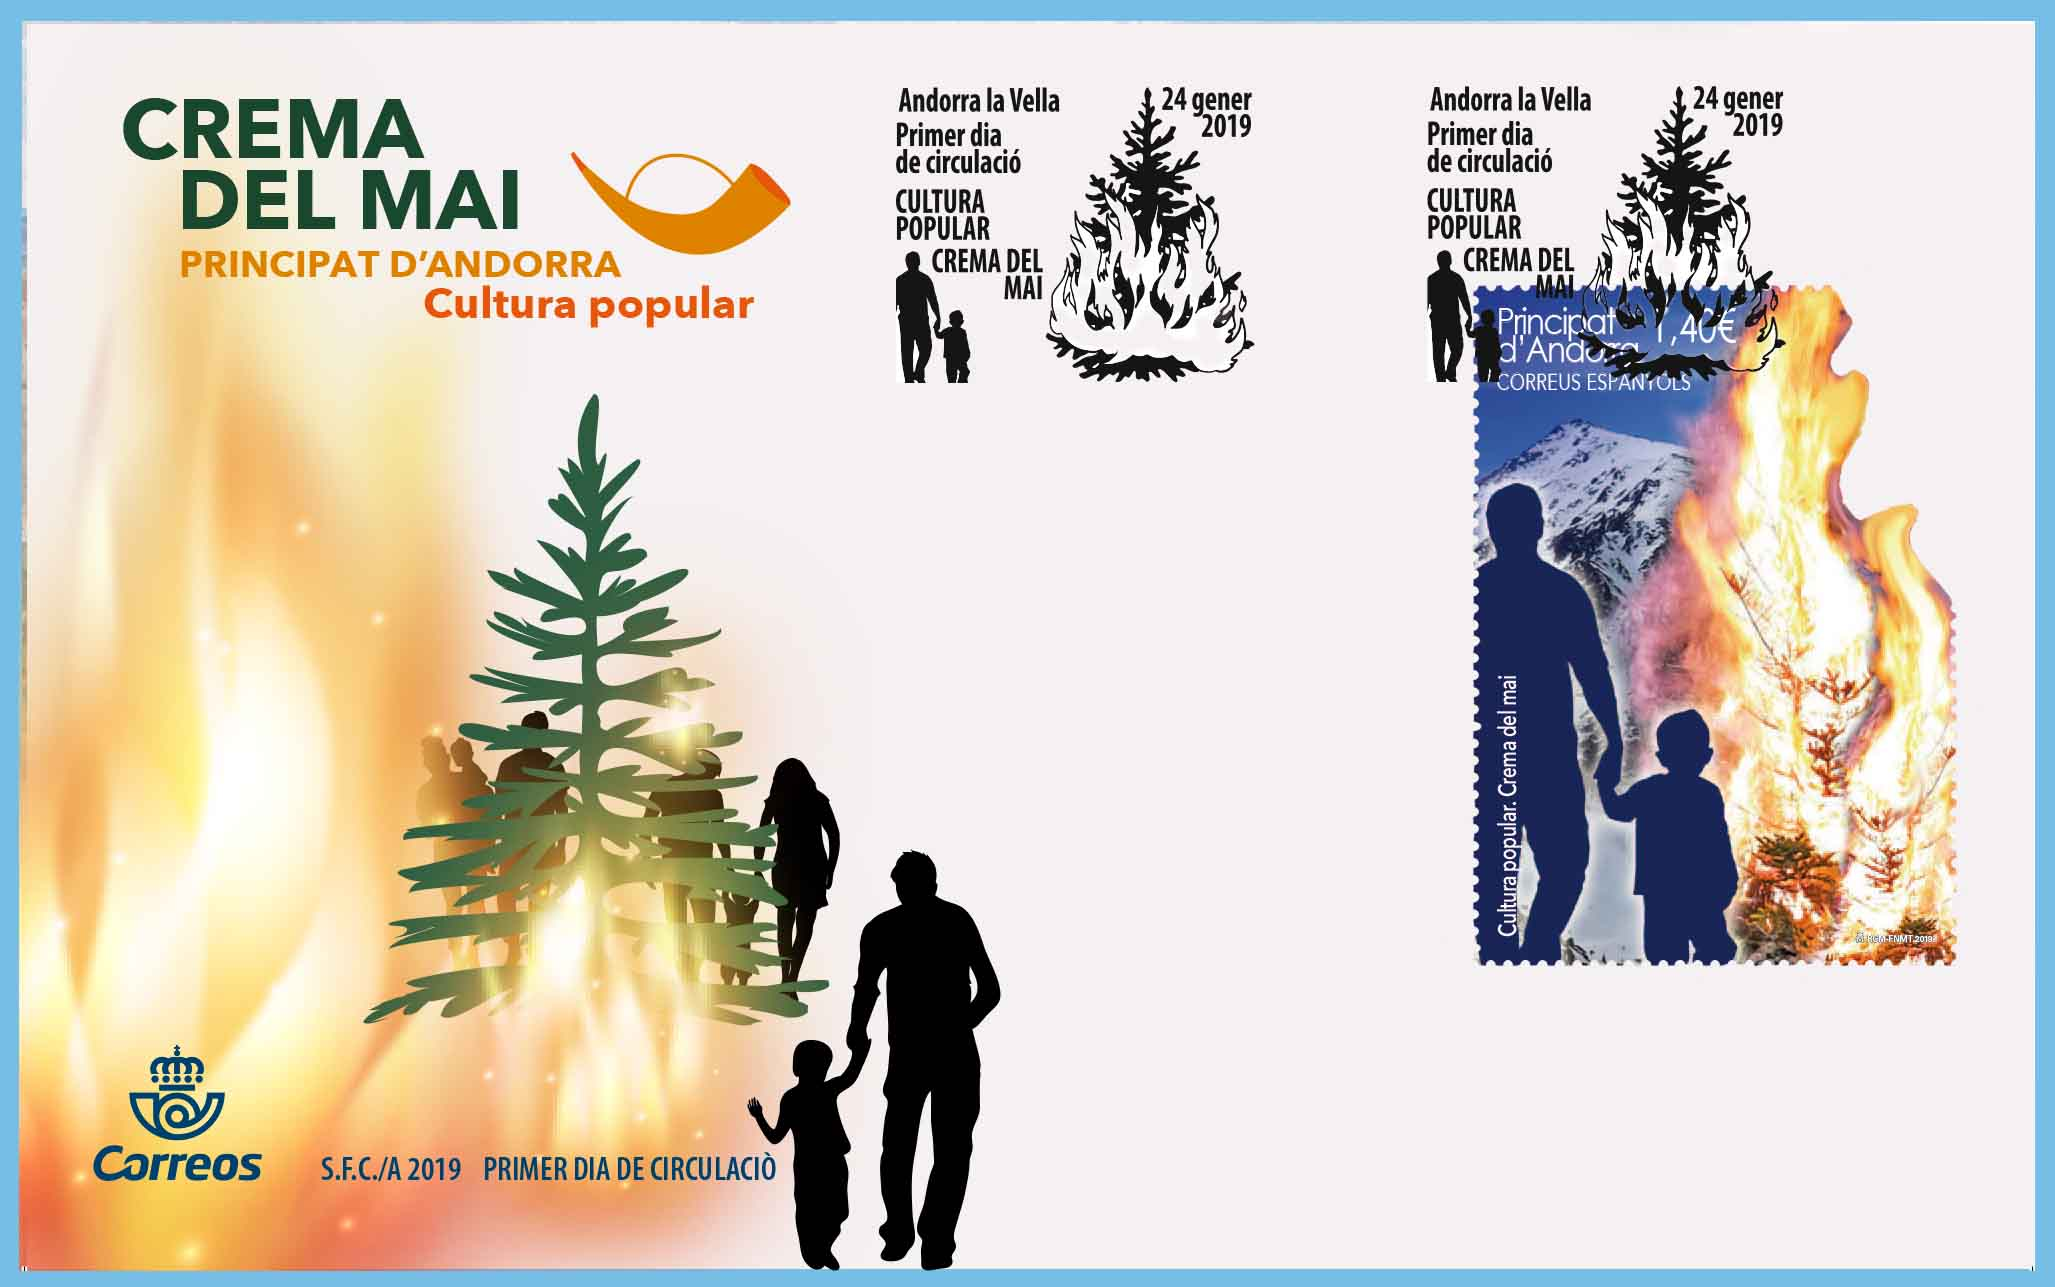 Spanish Andorra - Popular Culture: Cream of Mai 2019 (January 24, 2019) first day cover